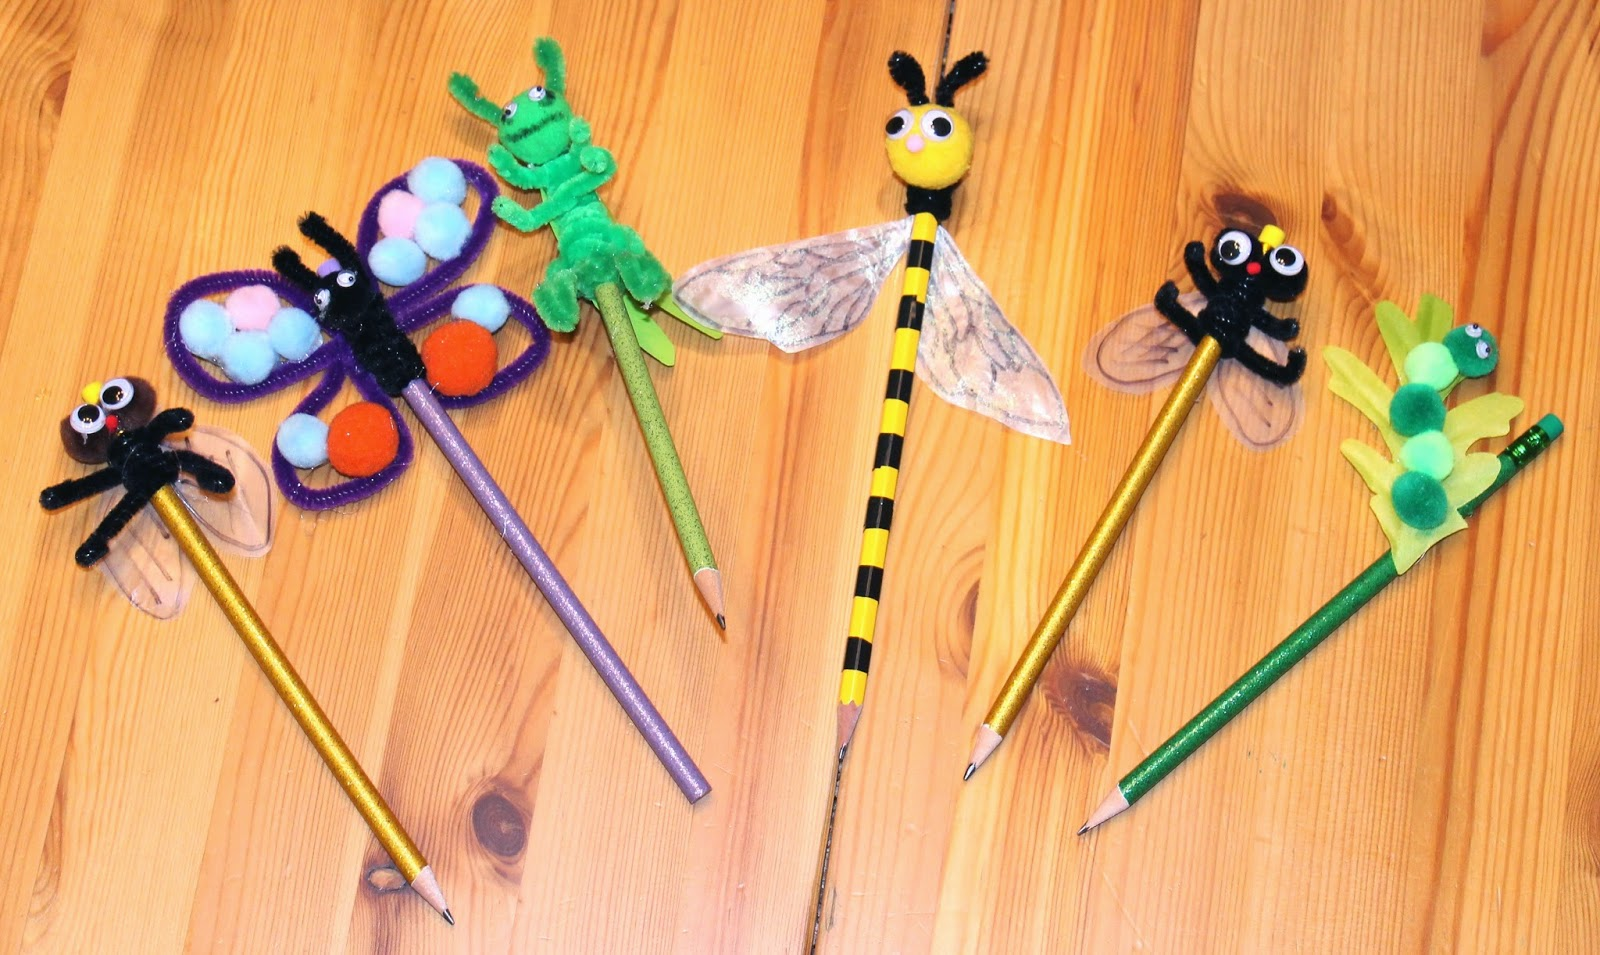 Delightful Creative Arts And Crafts Ideas For Kids Part - 12: Pencil Craft Ideas For Kids